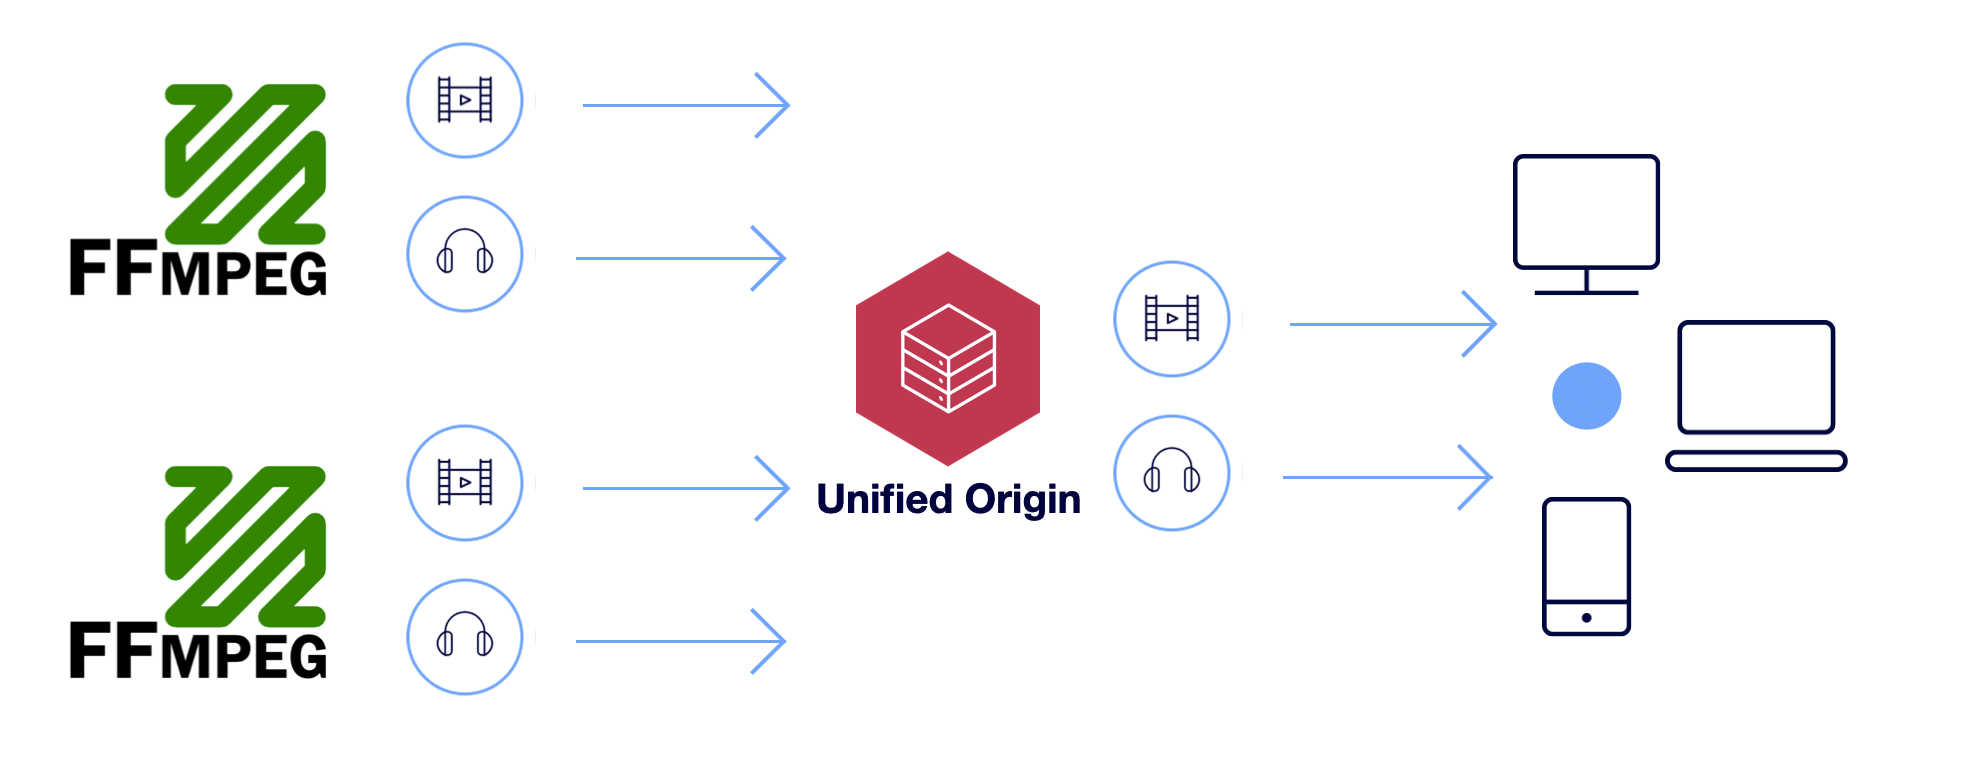 FFMPEG and Unified Origin